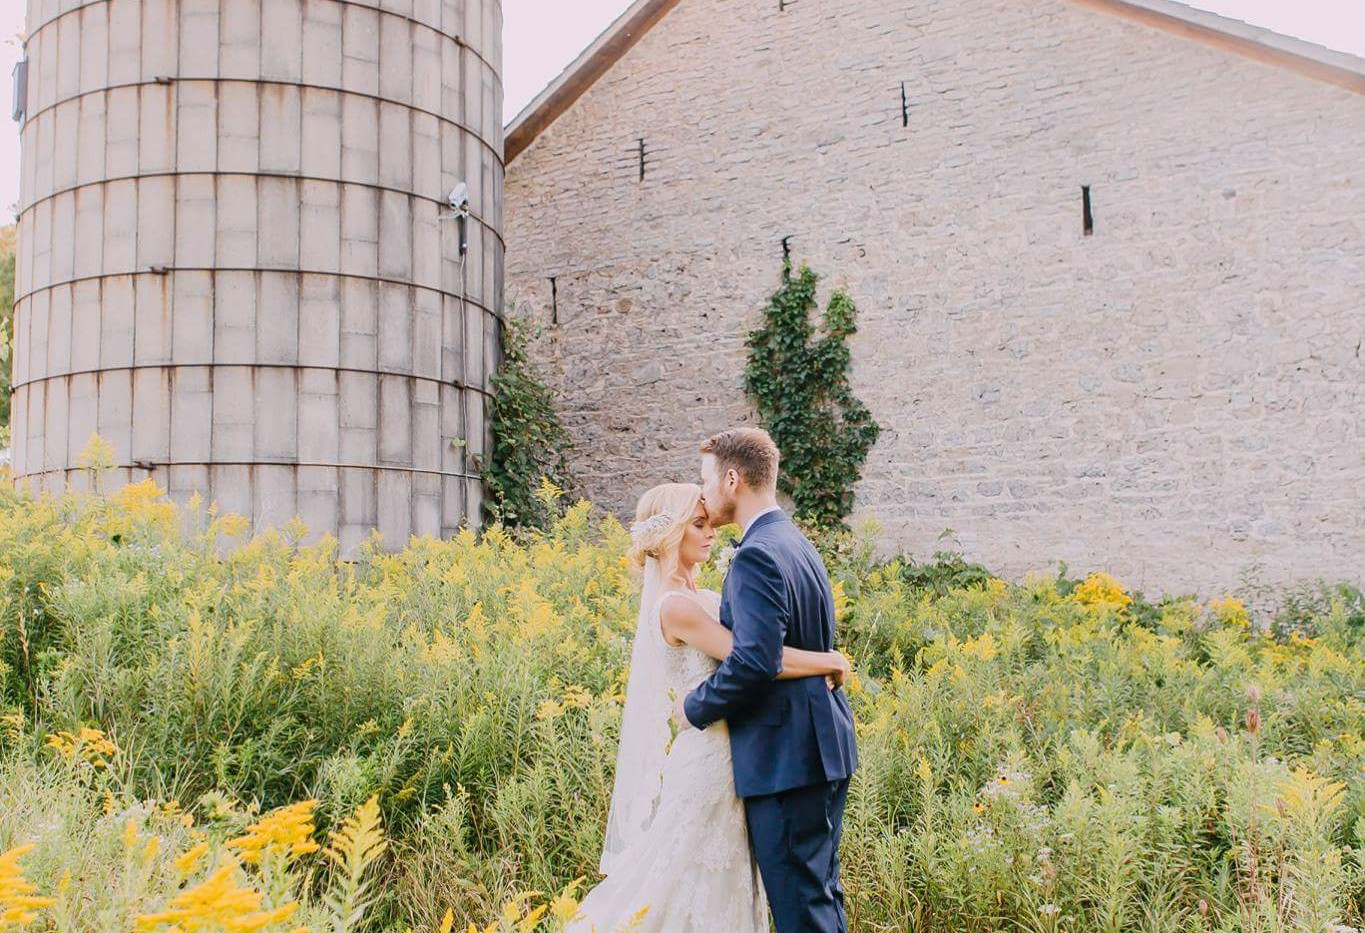 Bride and Groom posing in front of White Stone Barn with Silo, among a field of golden yellow wildflowers